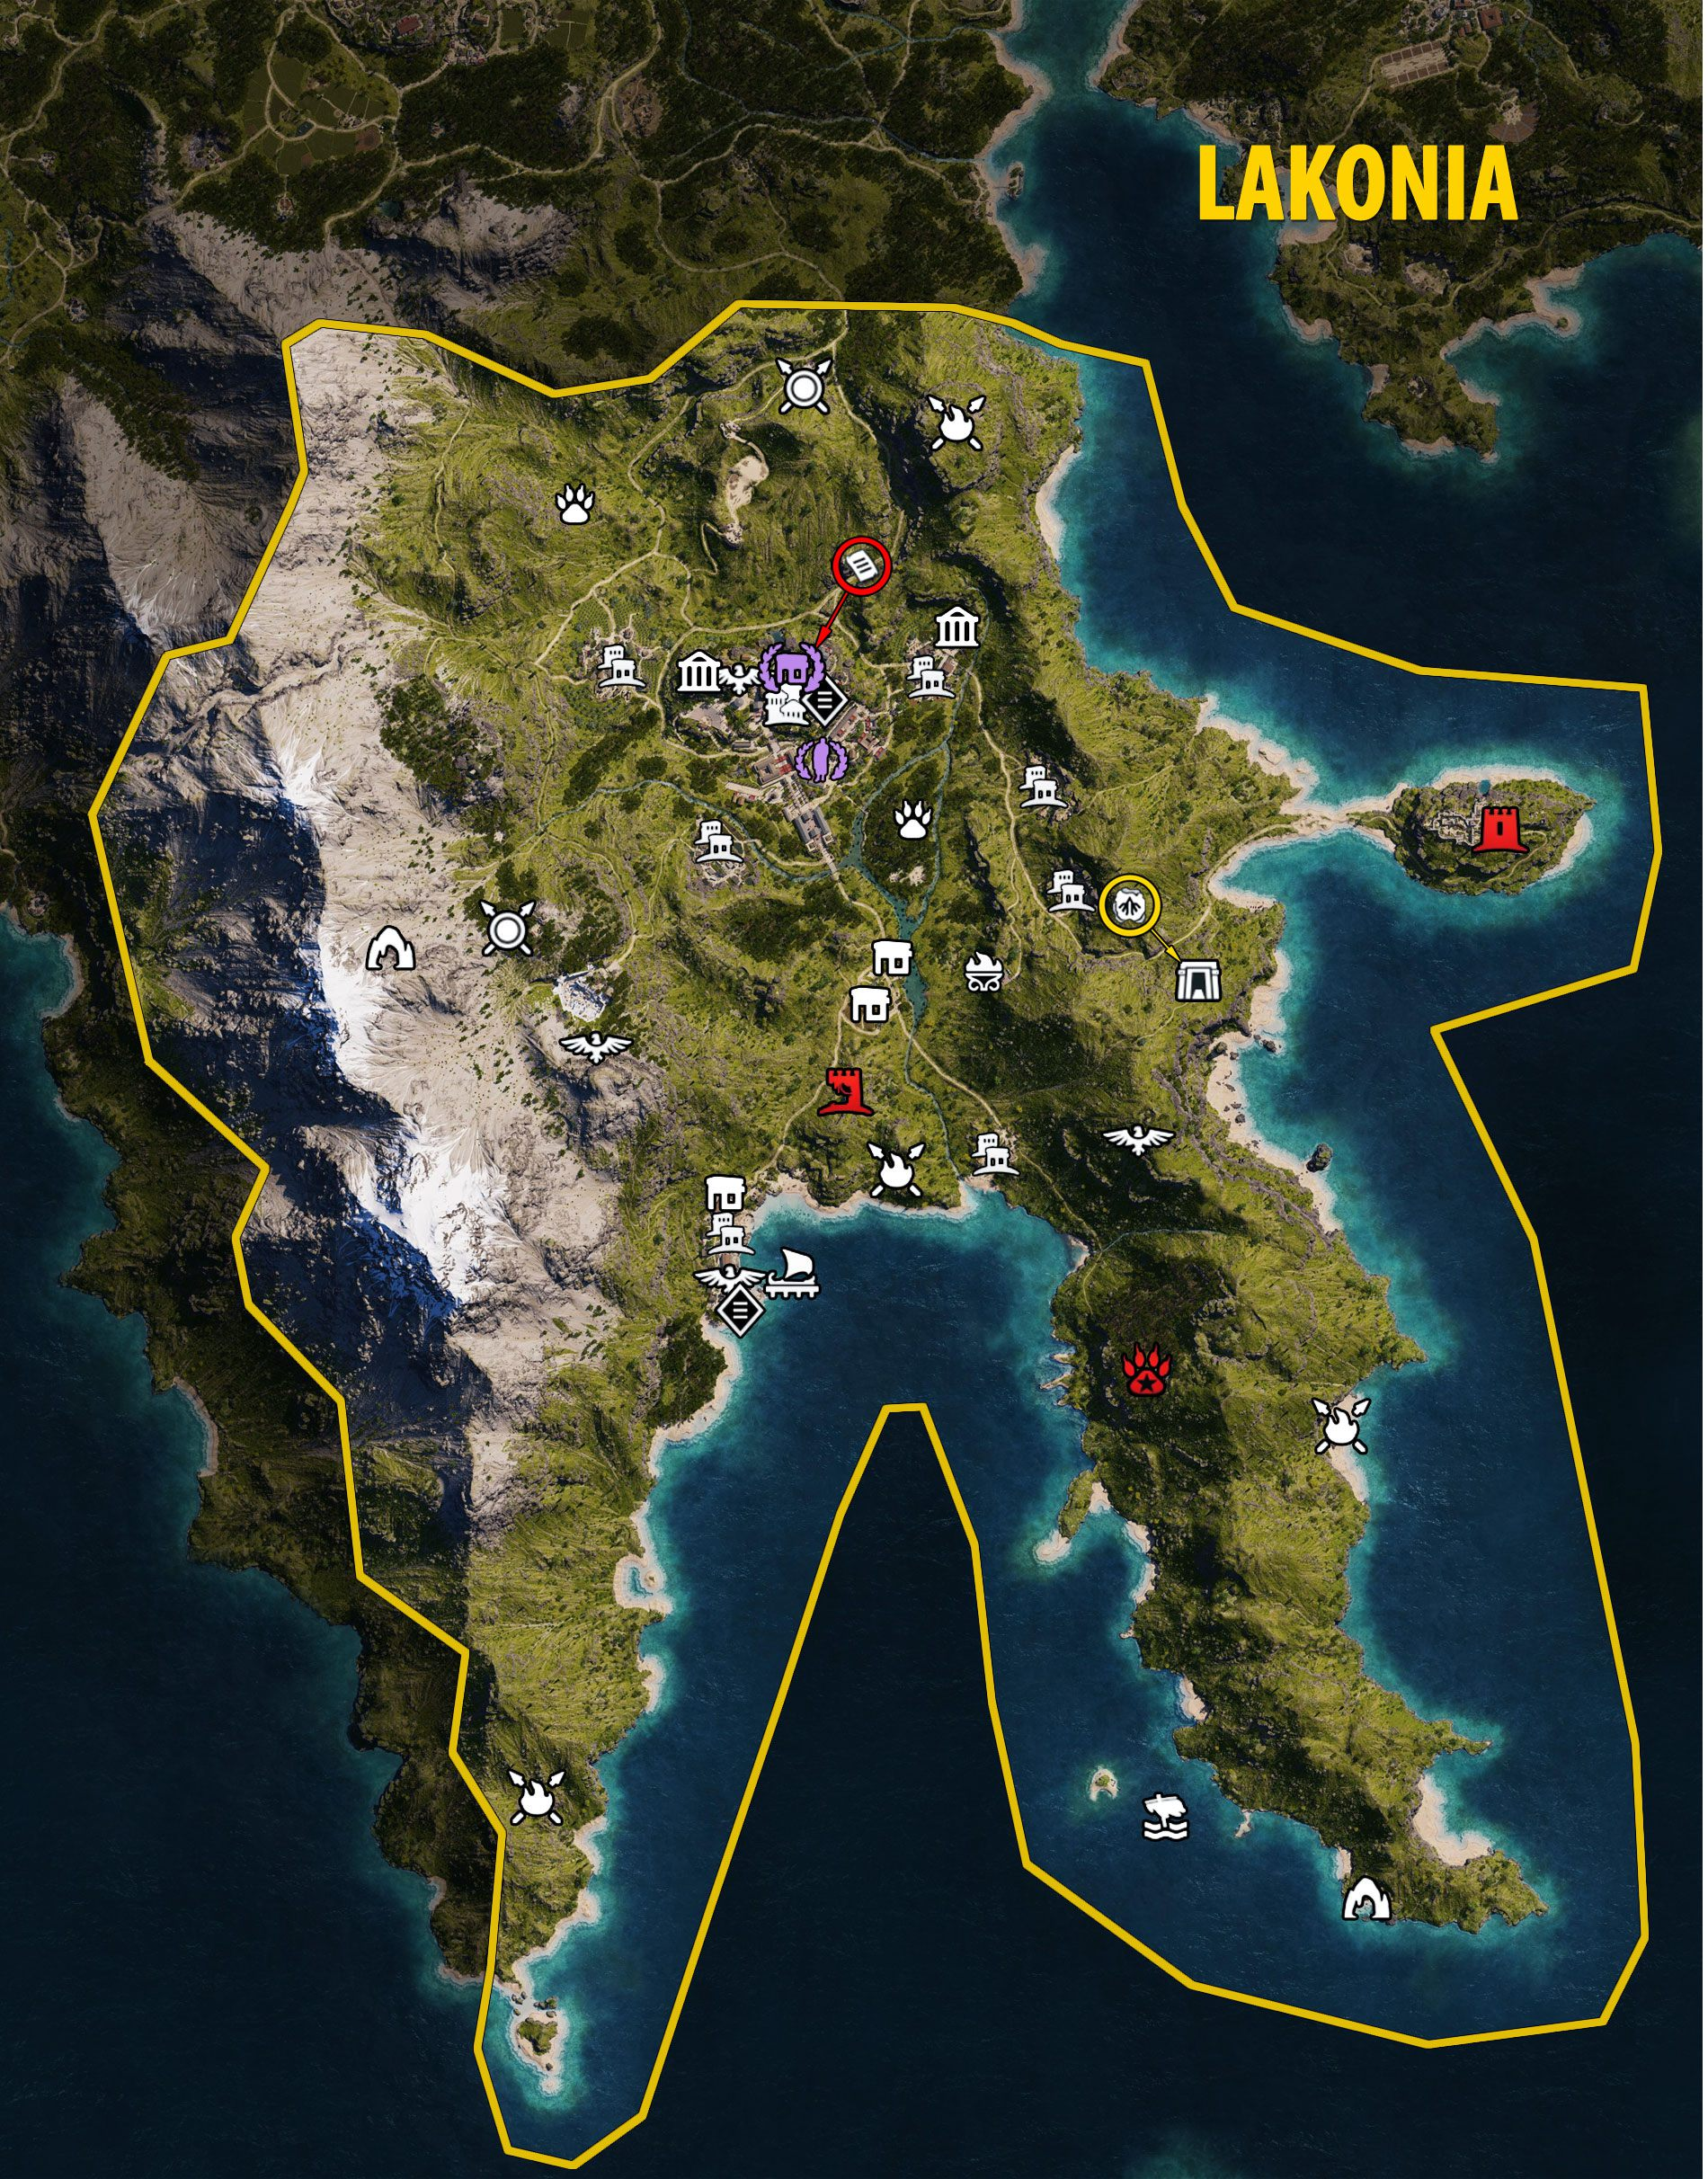 Lakonia - Assassin's Creed Odyssey map